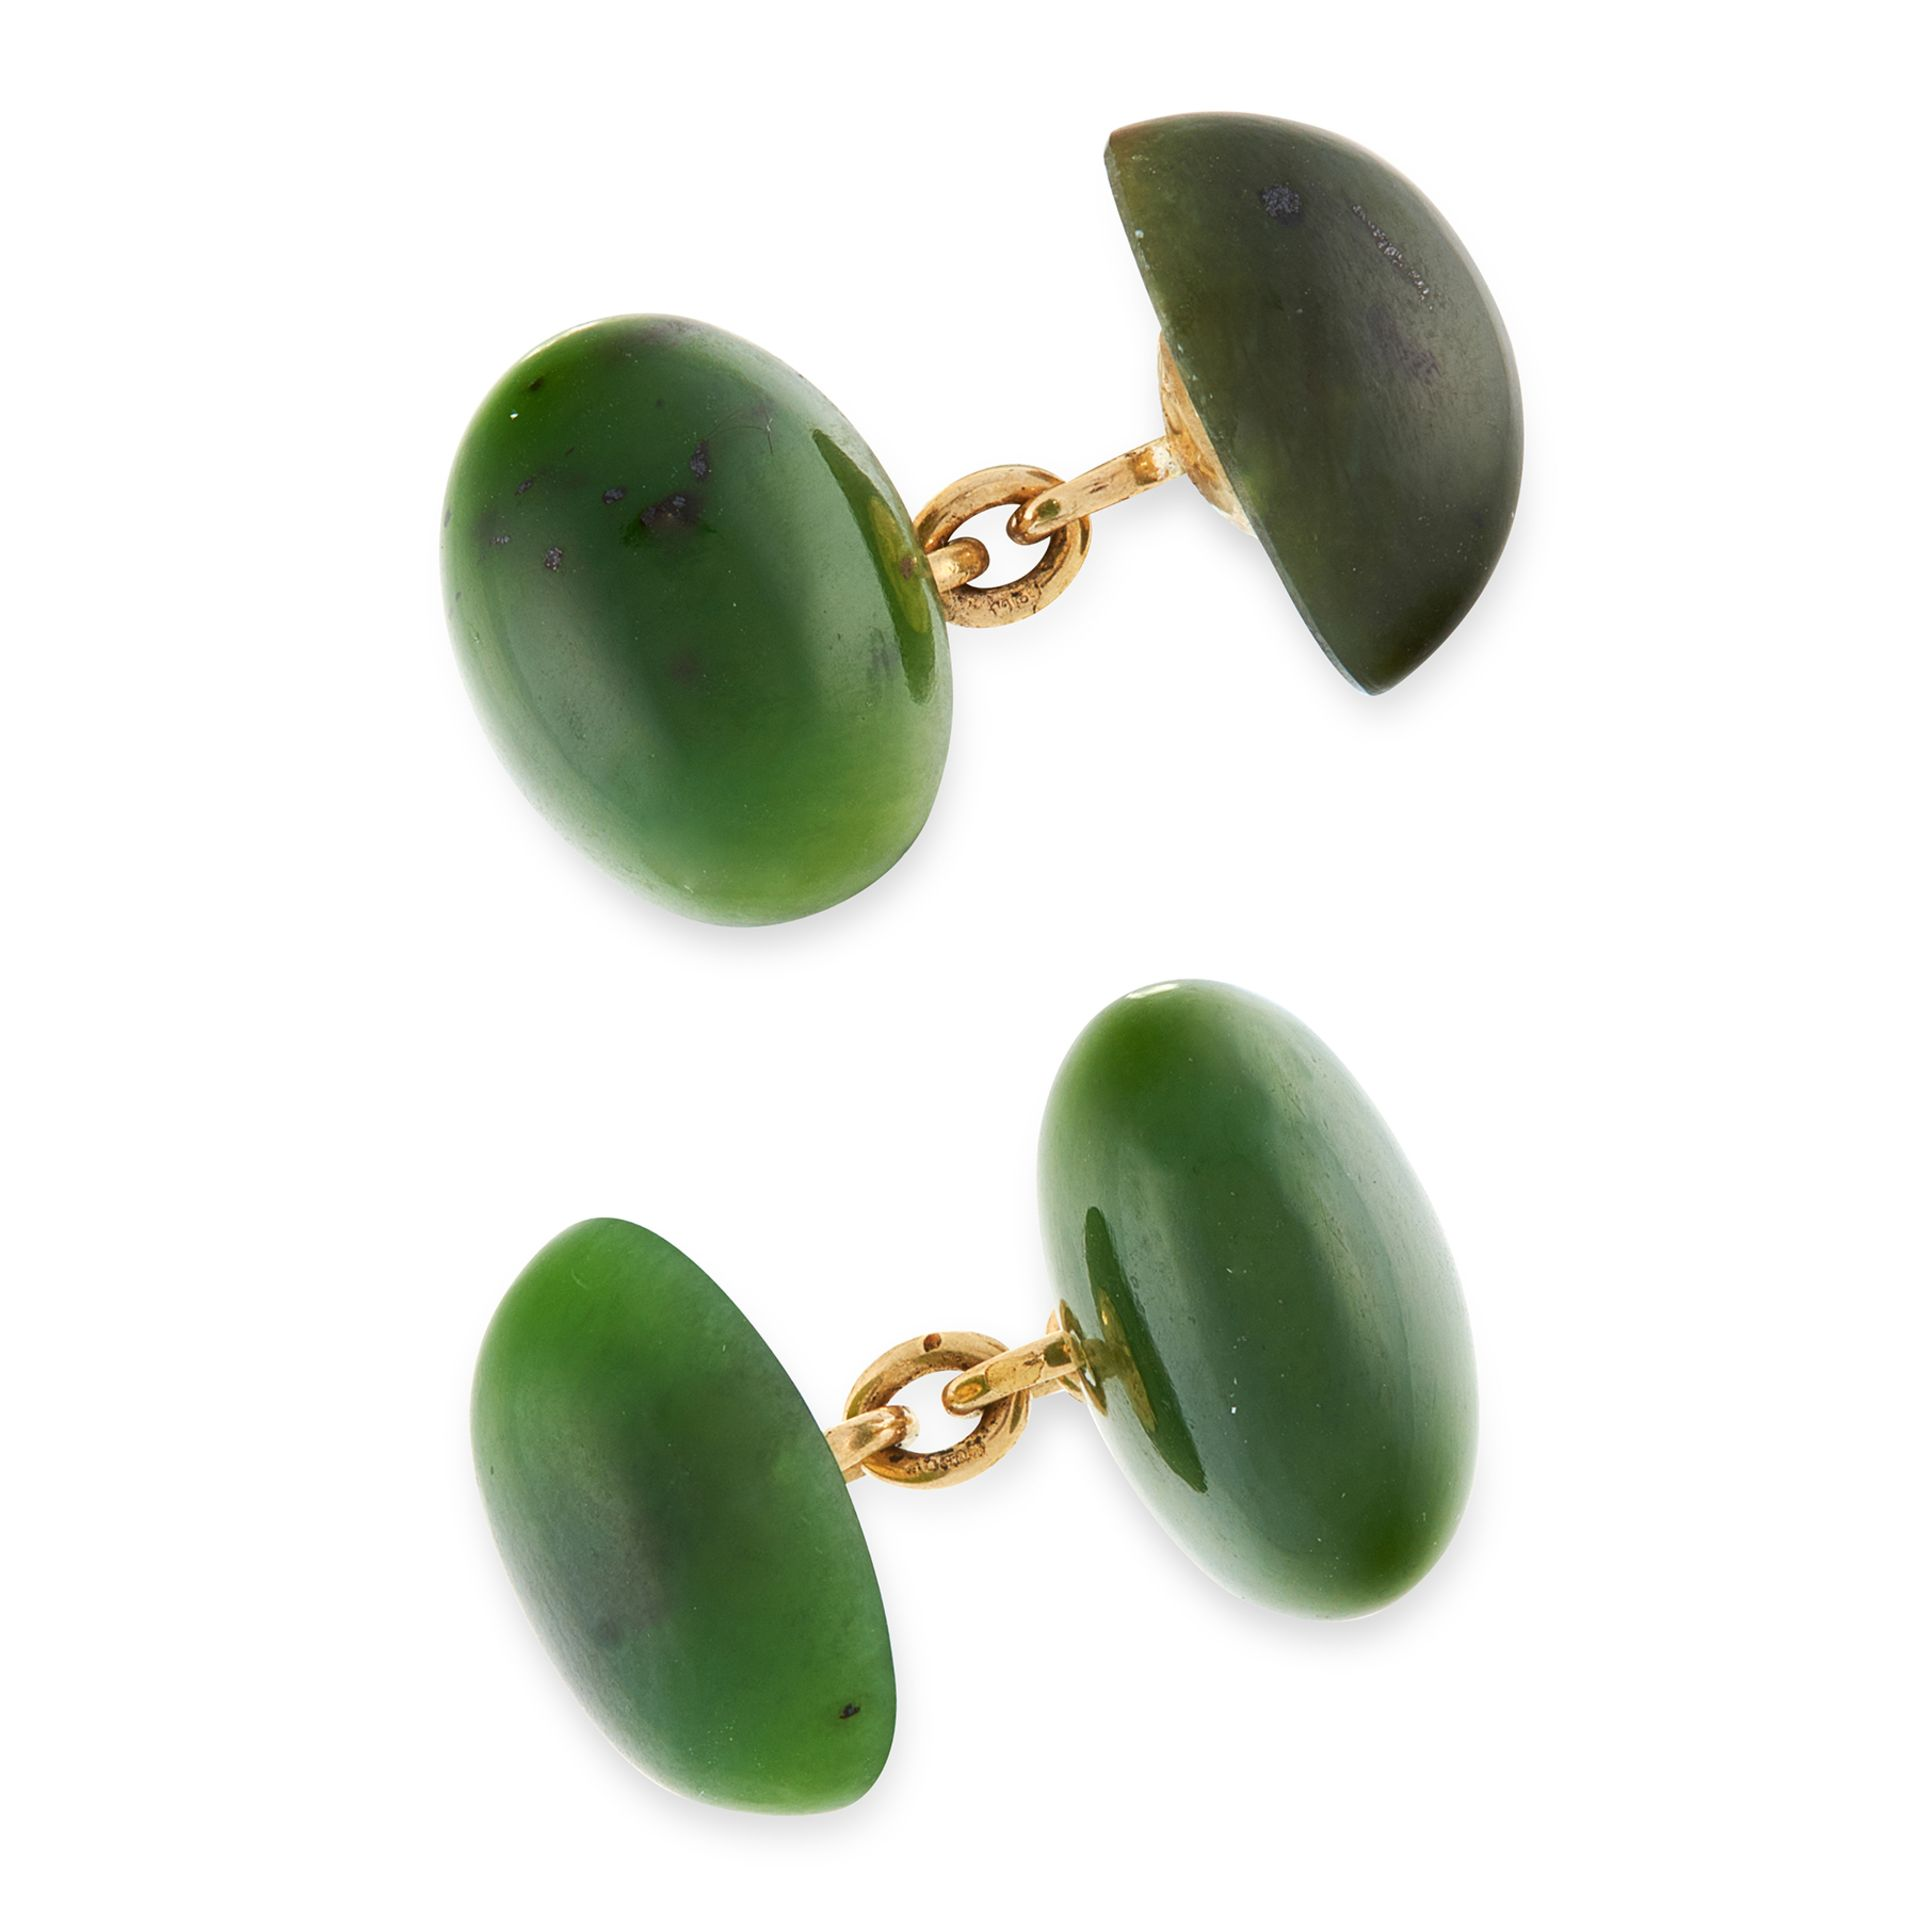 A PAIR OF NEPHRITE JADE CUFFLINKS, LONGMIRE in 18ct yellow gold, each comprising two polished oval